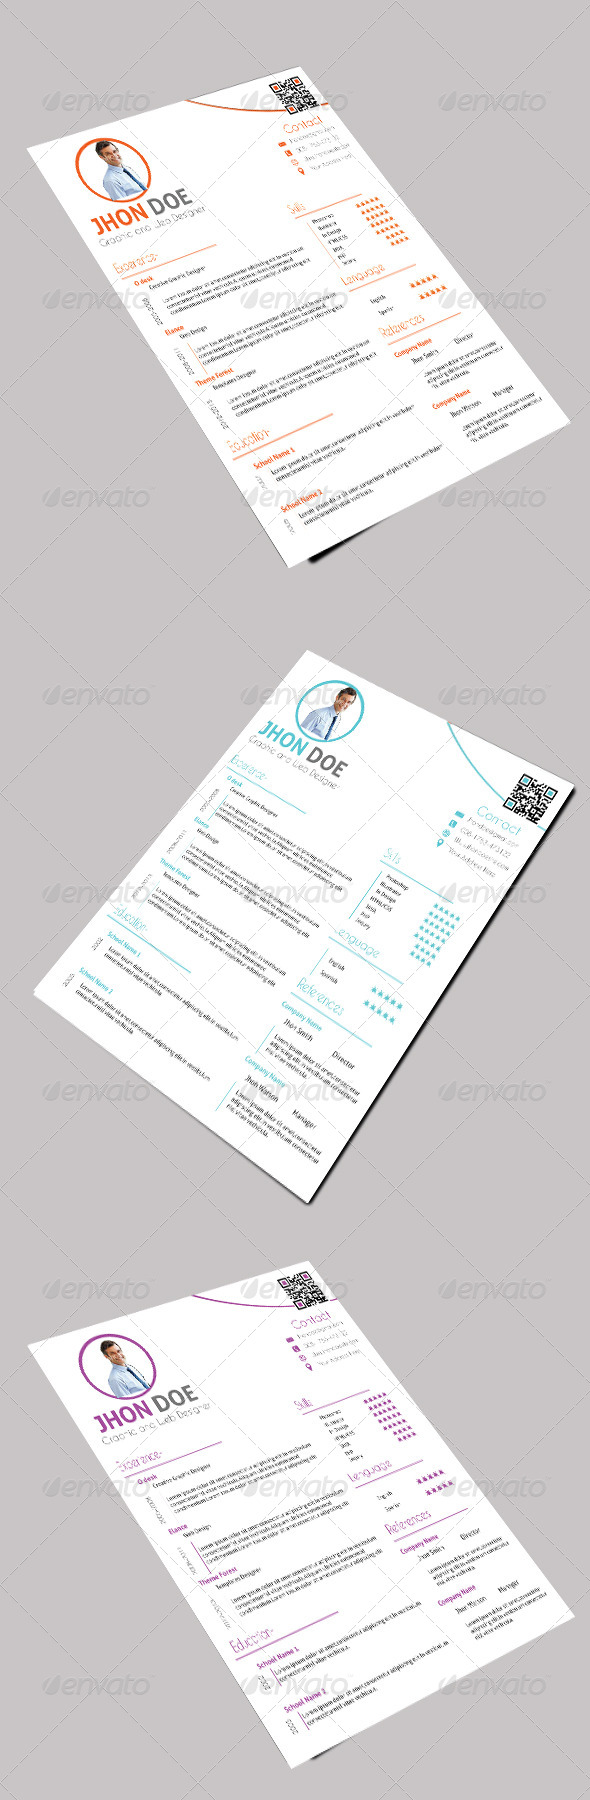 GraphicRiver Clean One Page Resume 5261606